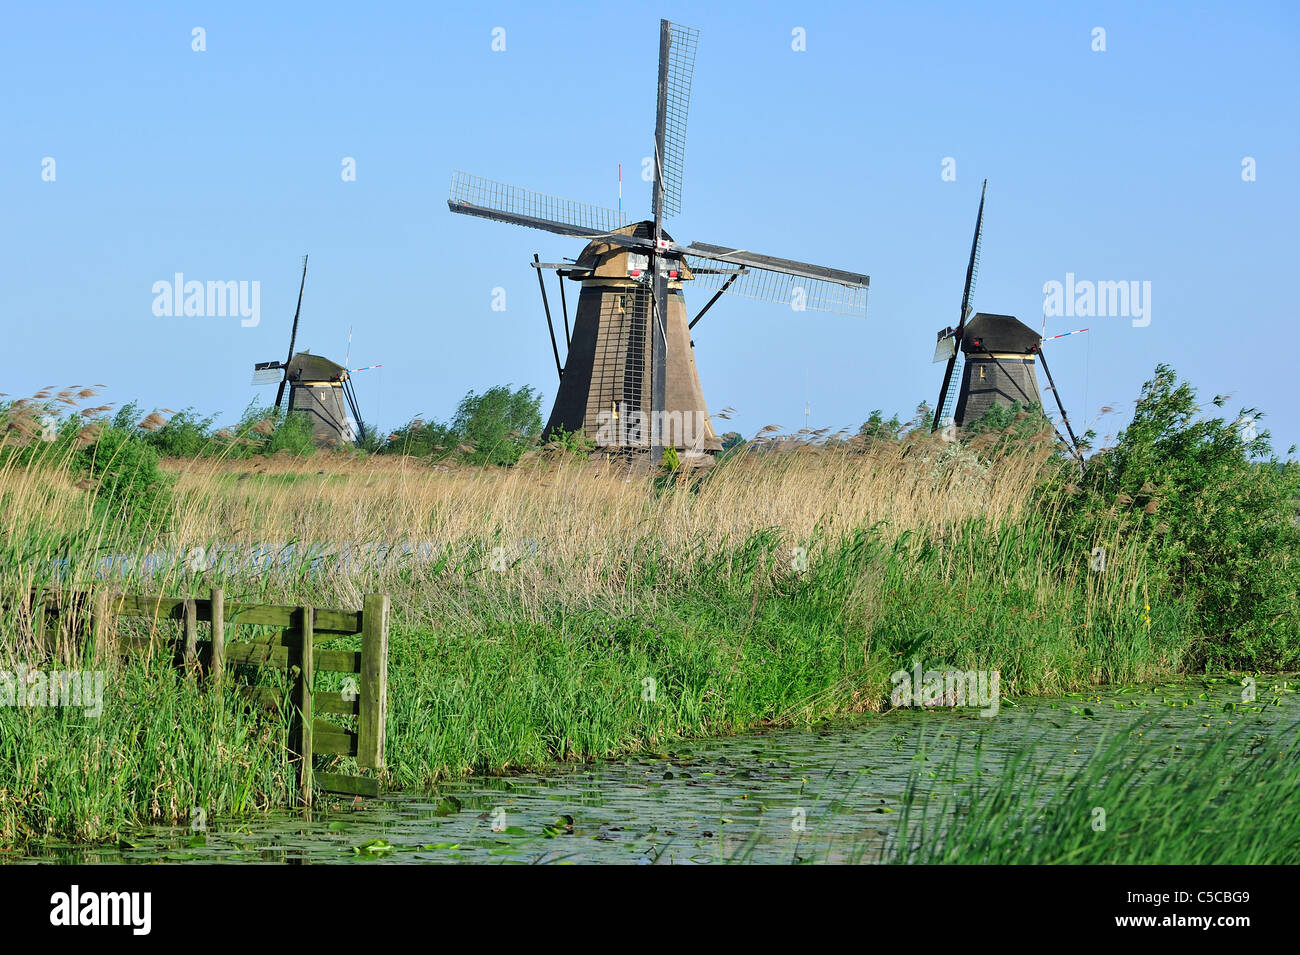 Thatched polder windmills at Kinderdijk, a UNESCO World Heritage Site at South Holland, the Netherlands - Stock Image